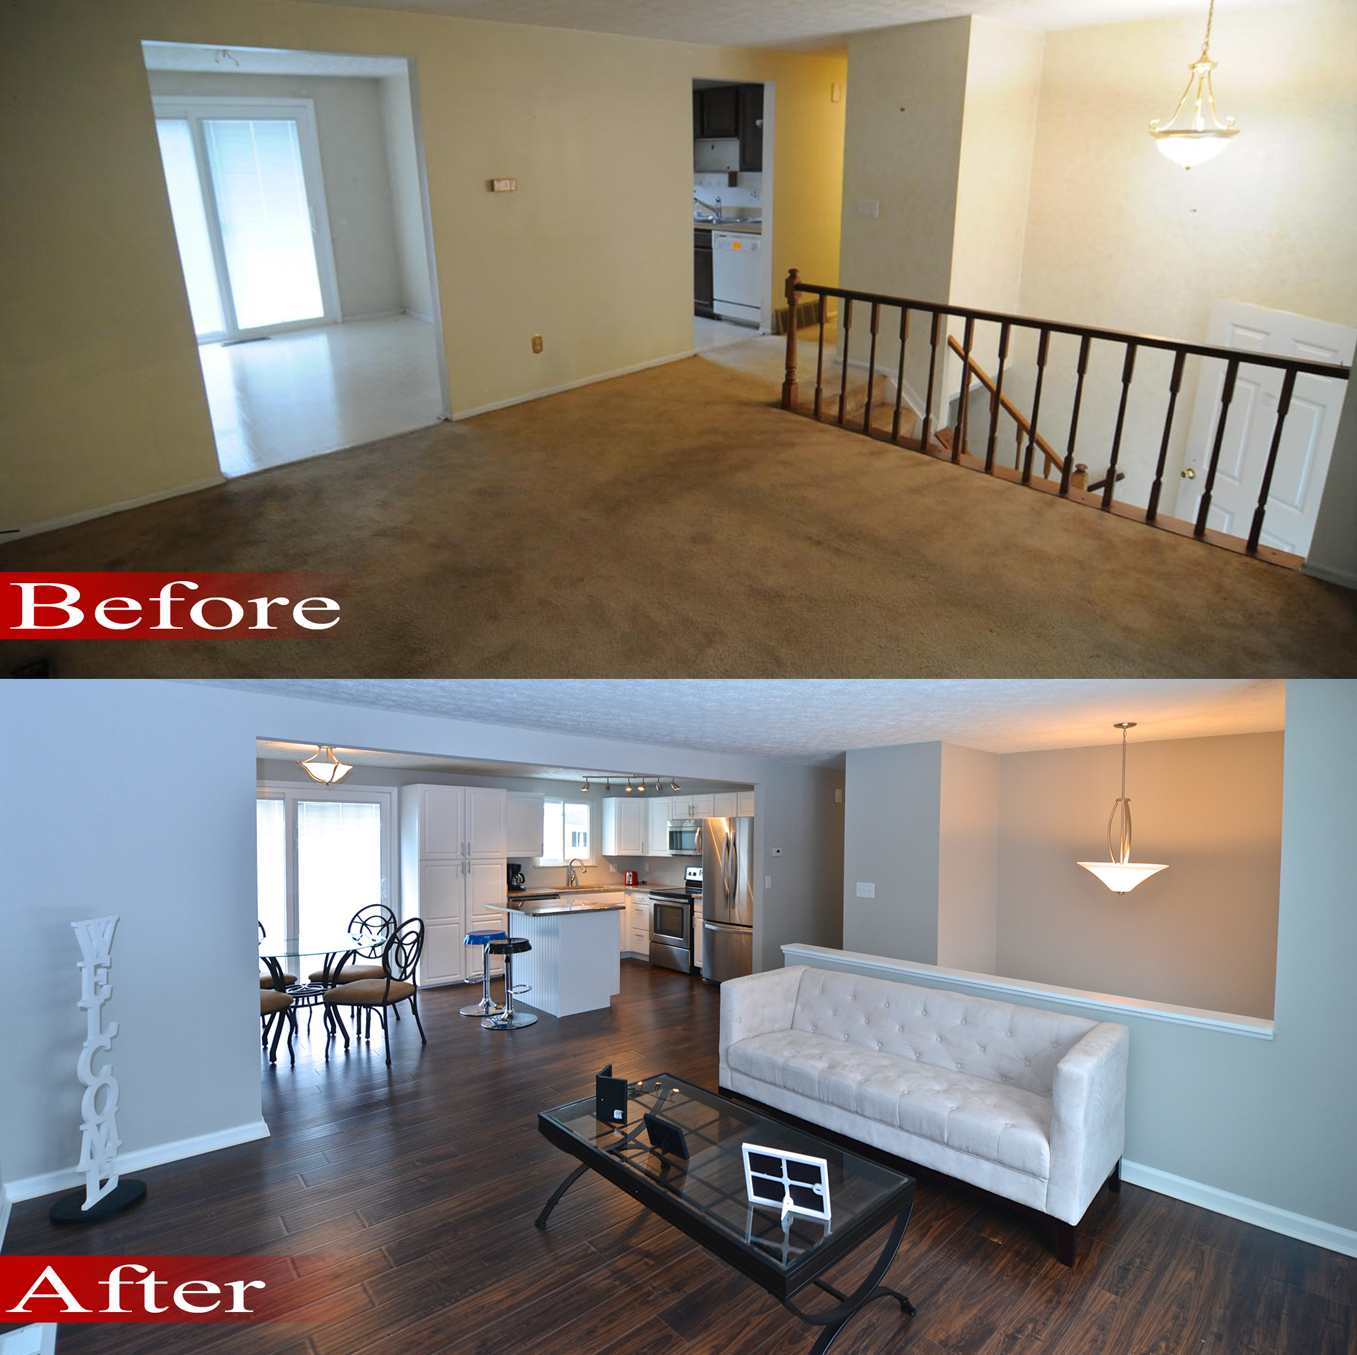 Before And After Of This Beautiful Open Concept Kitchen: Property Brothers Before And After Photos